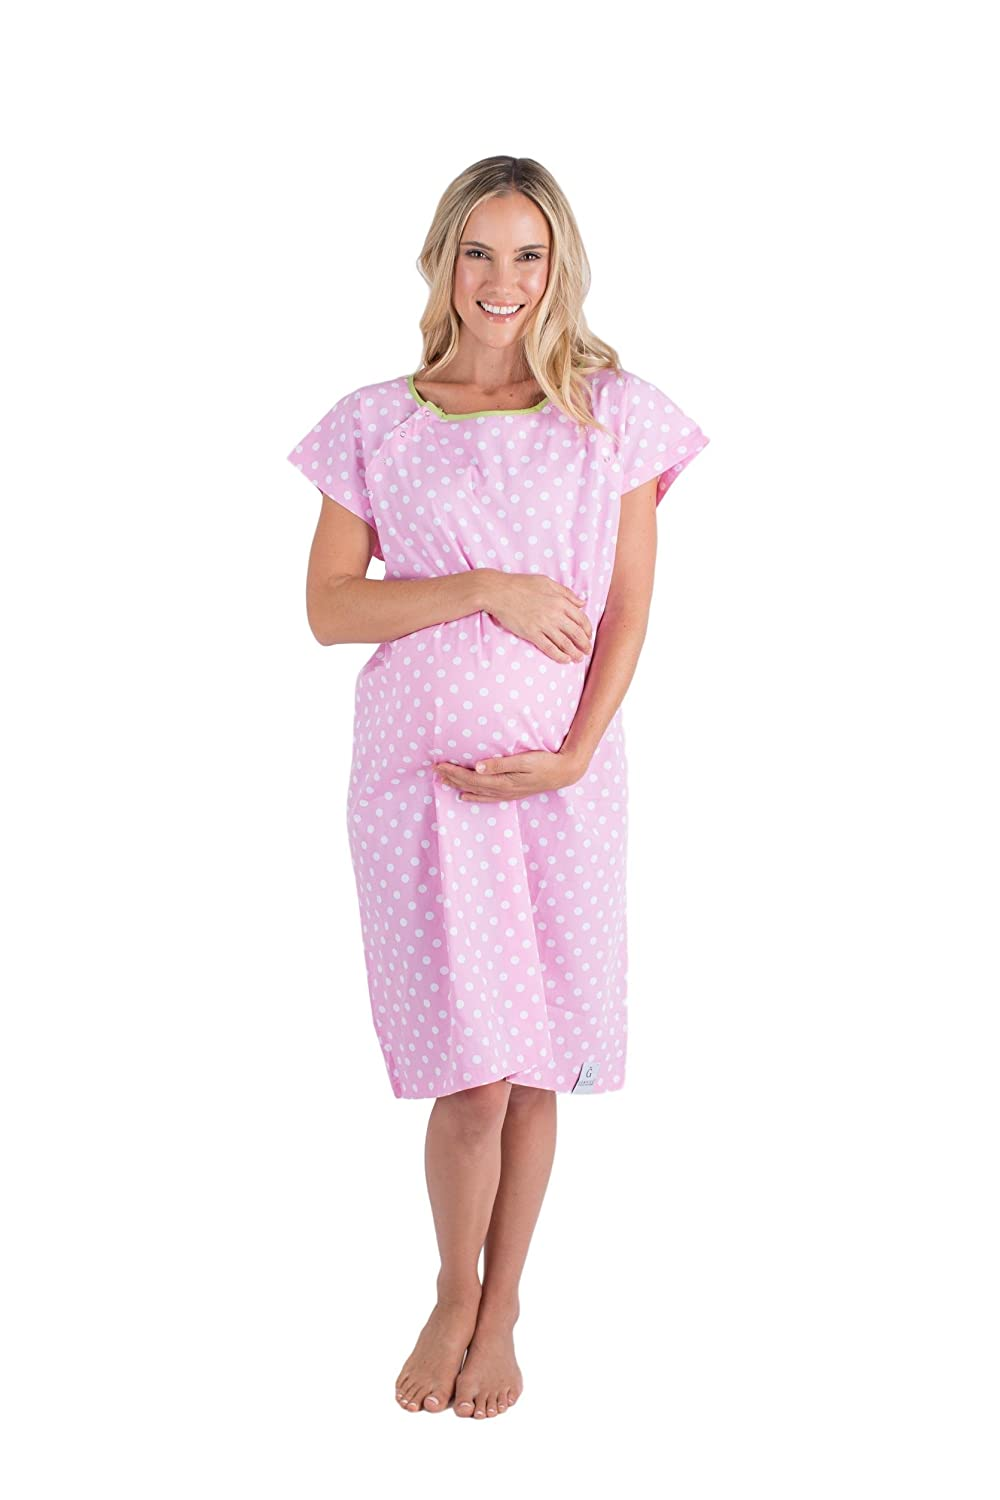 Baby Be Mine Gownies Labor /& Delivery Maternity Hospital Gown Maternity Hospital Bag Must Have Best